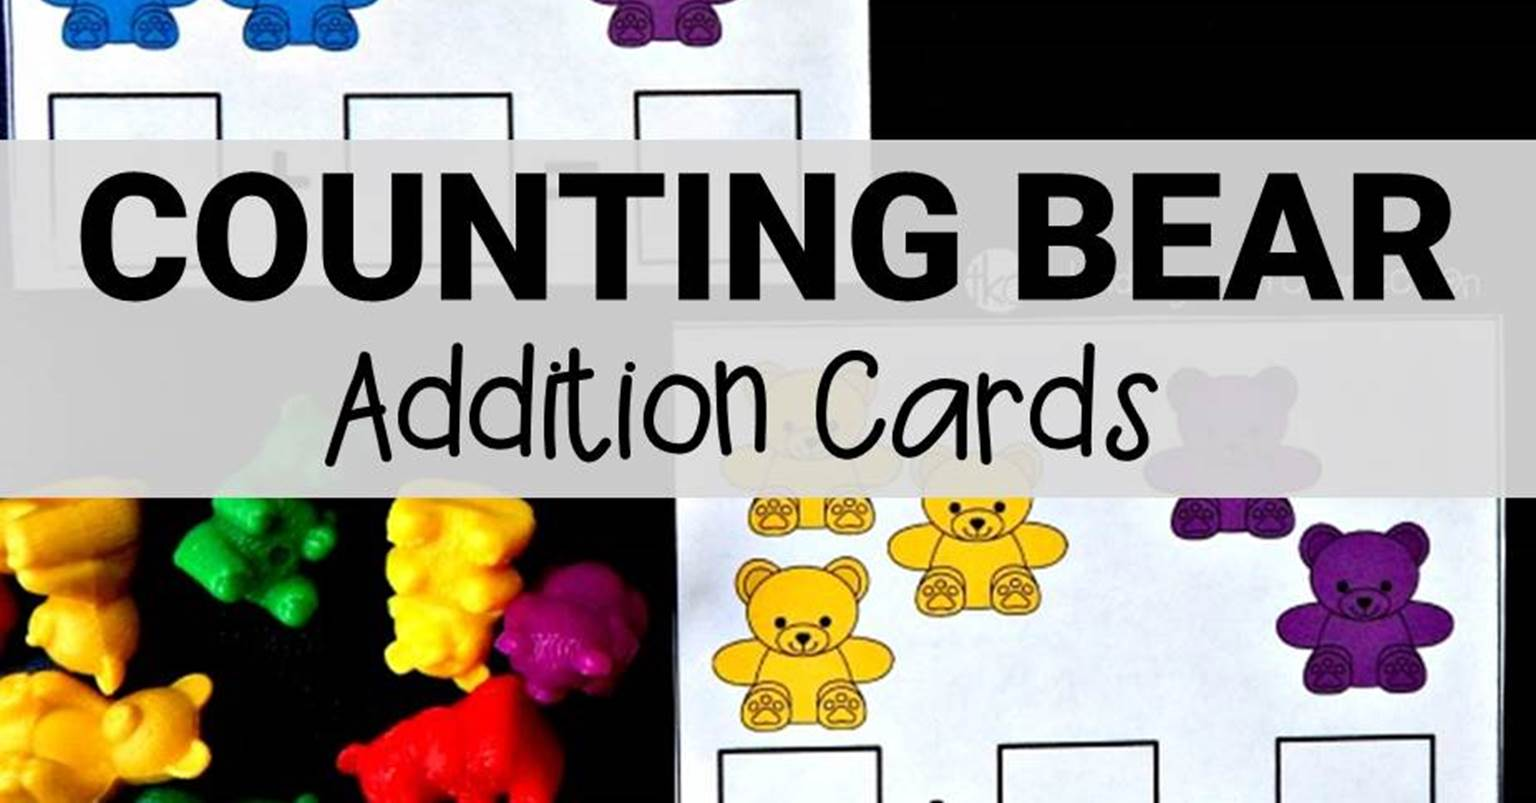 Counting Bear Addition Cards